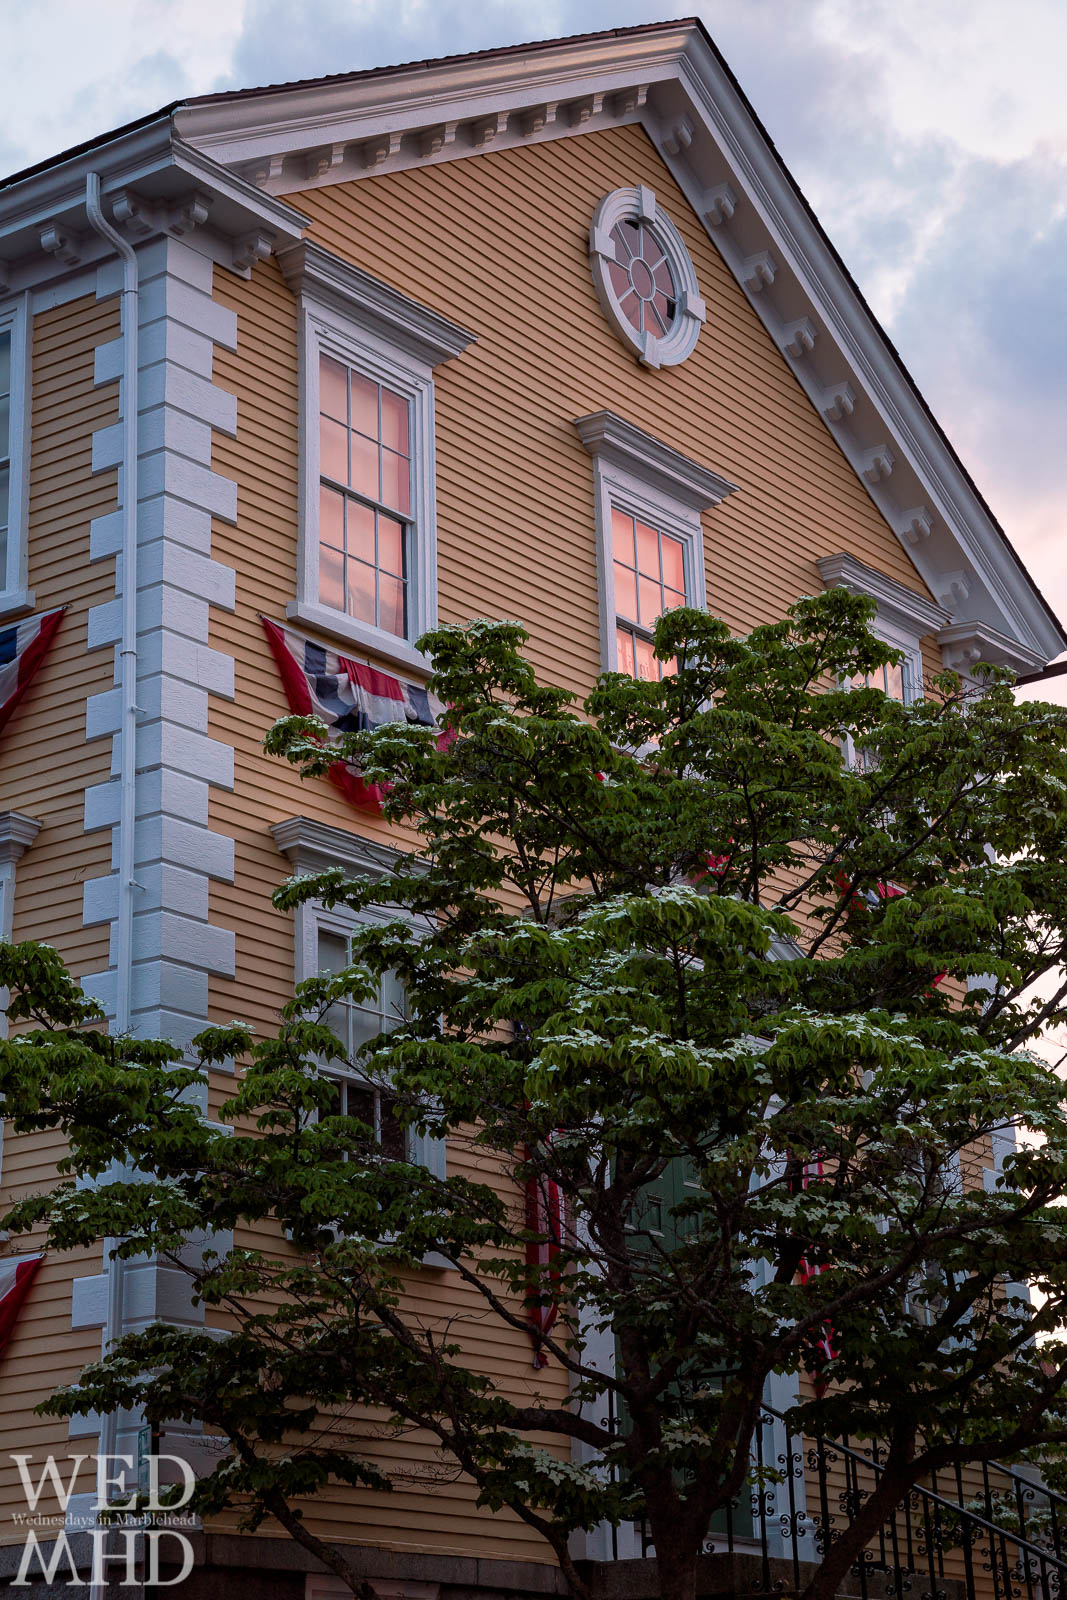 Old Town House Wednesdays In Marblehead